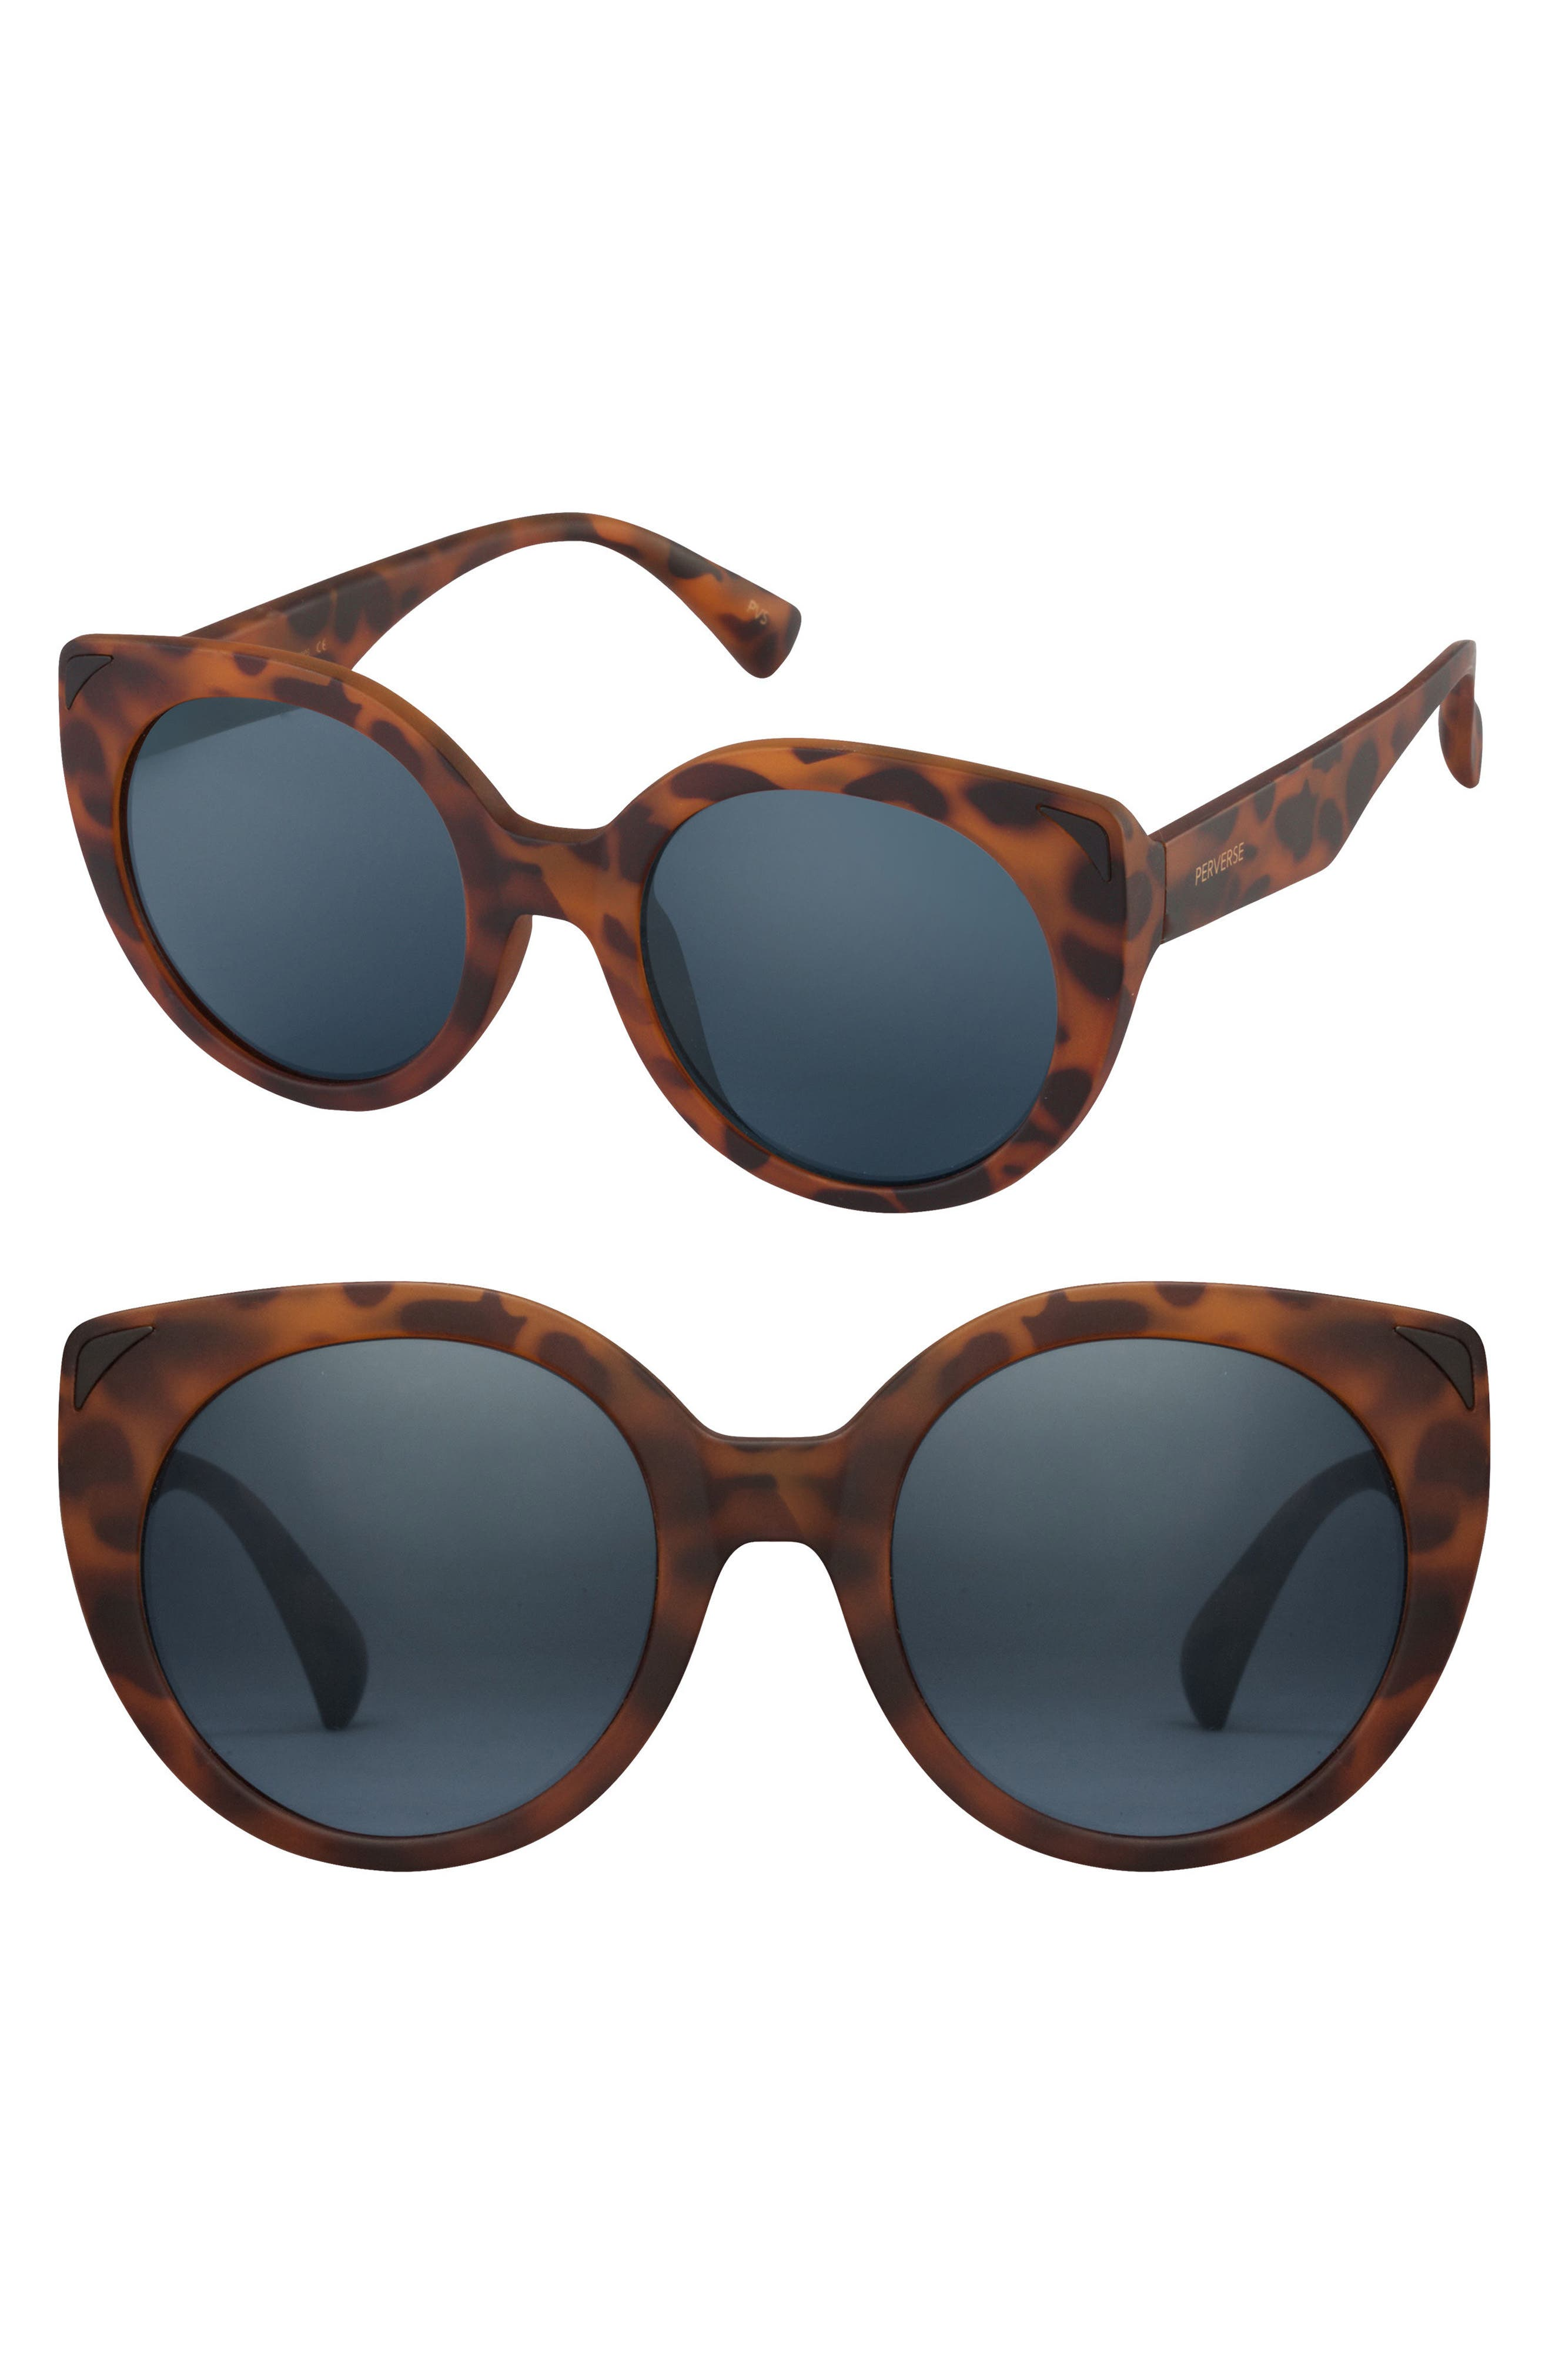 49mm Feline Round Cat Eye Sunglasses,                             Main thumbnail 1, color,                             Tortoise/ Black